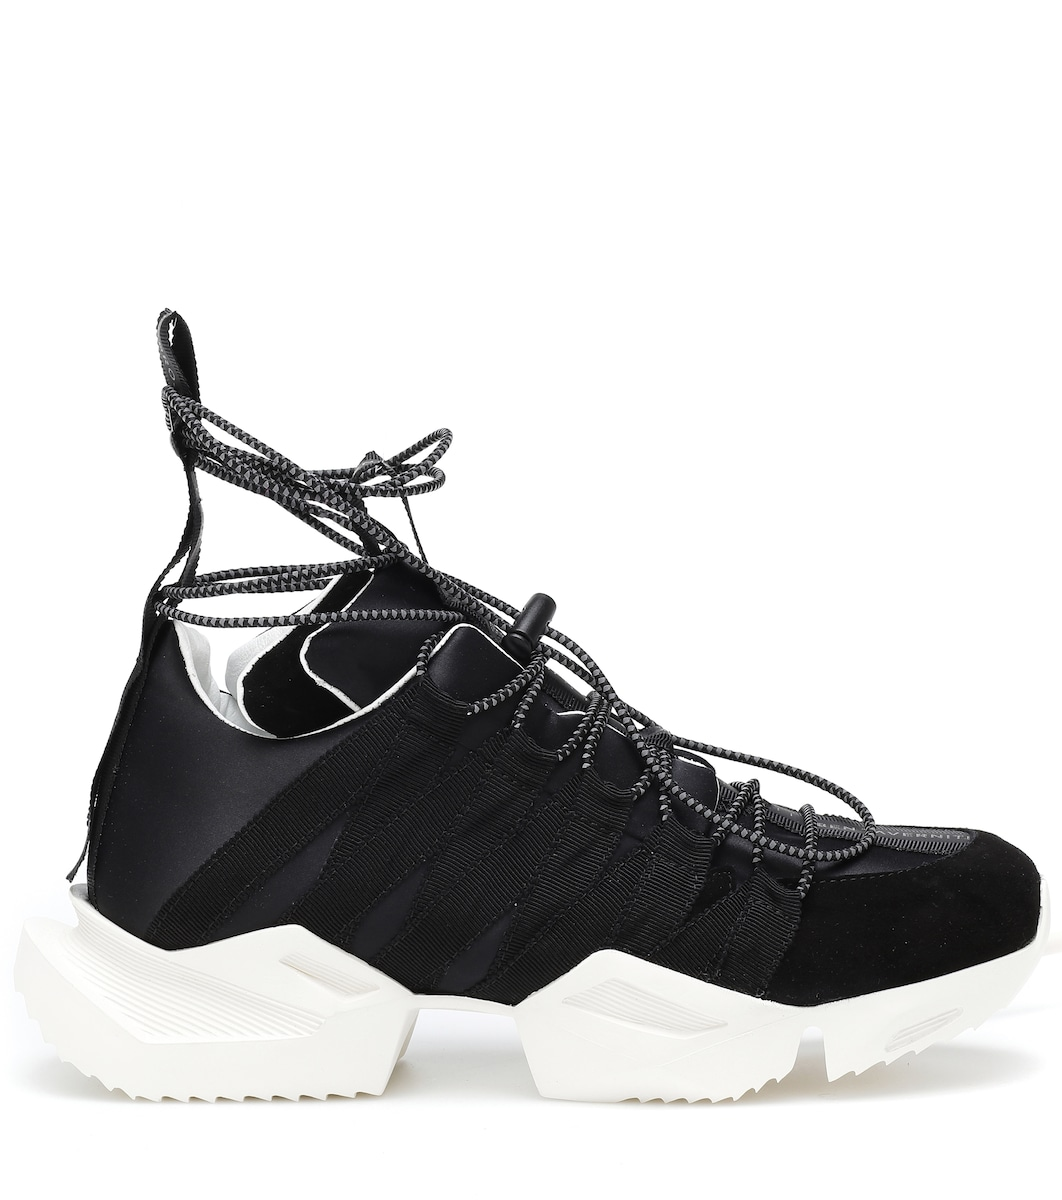 Suede TessutoMytheresa Sneakers Unravel In E zMpLSjqUVG